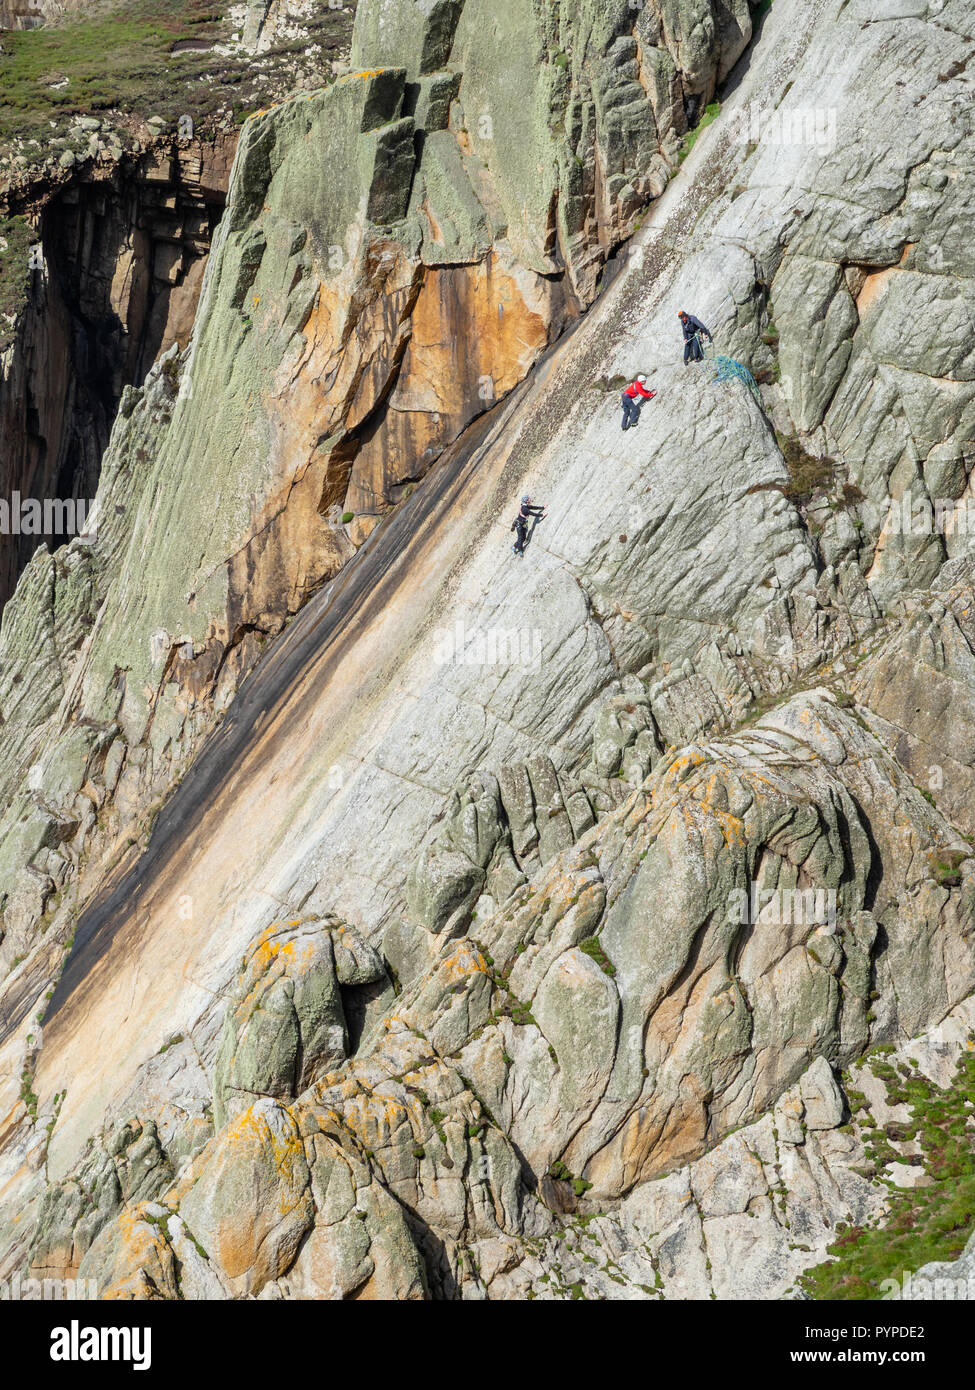 Climbers on the sheer face of The Devil's Slide the longest single granite slab climb in Europe - Lundy Island off Devon UK - Stock Image